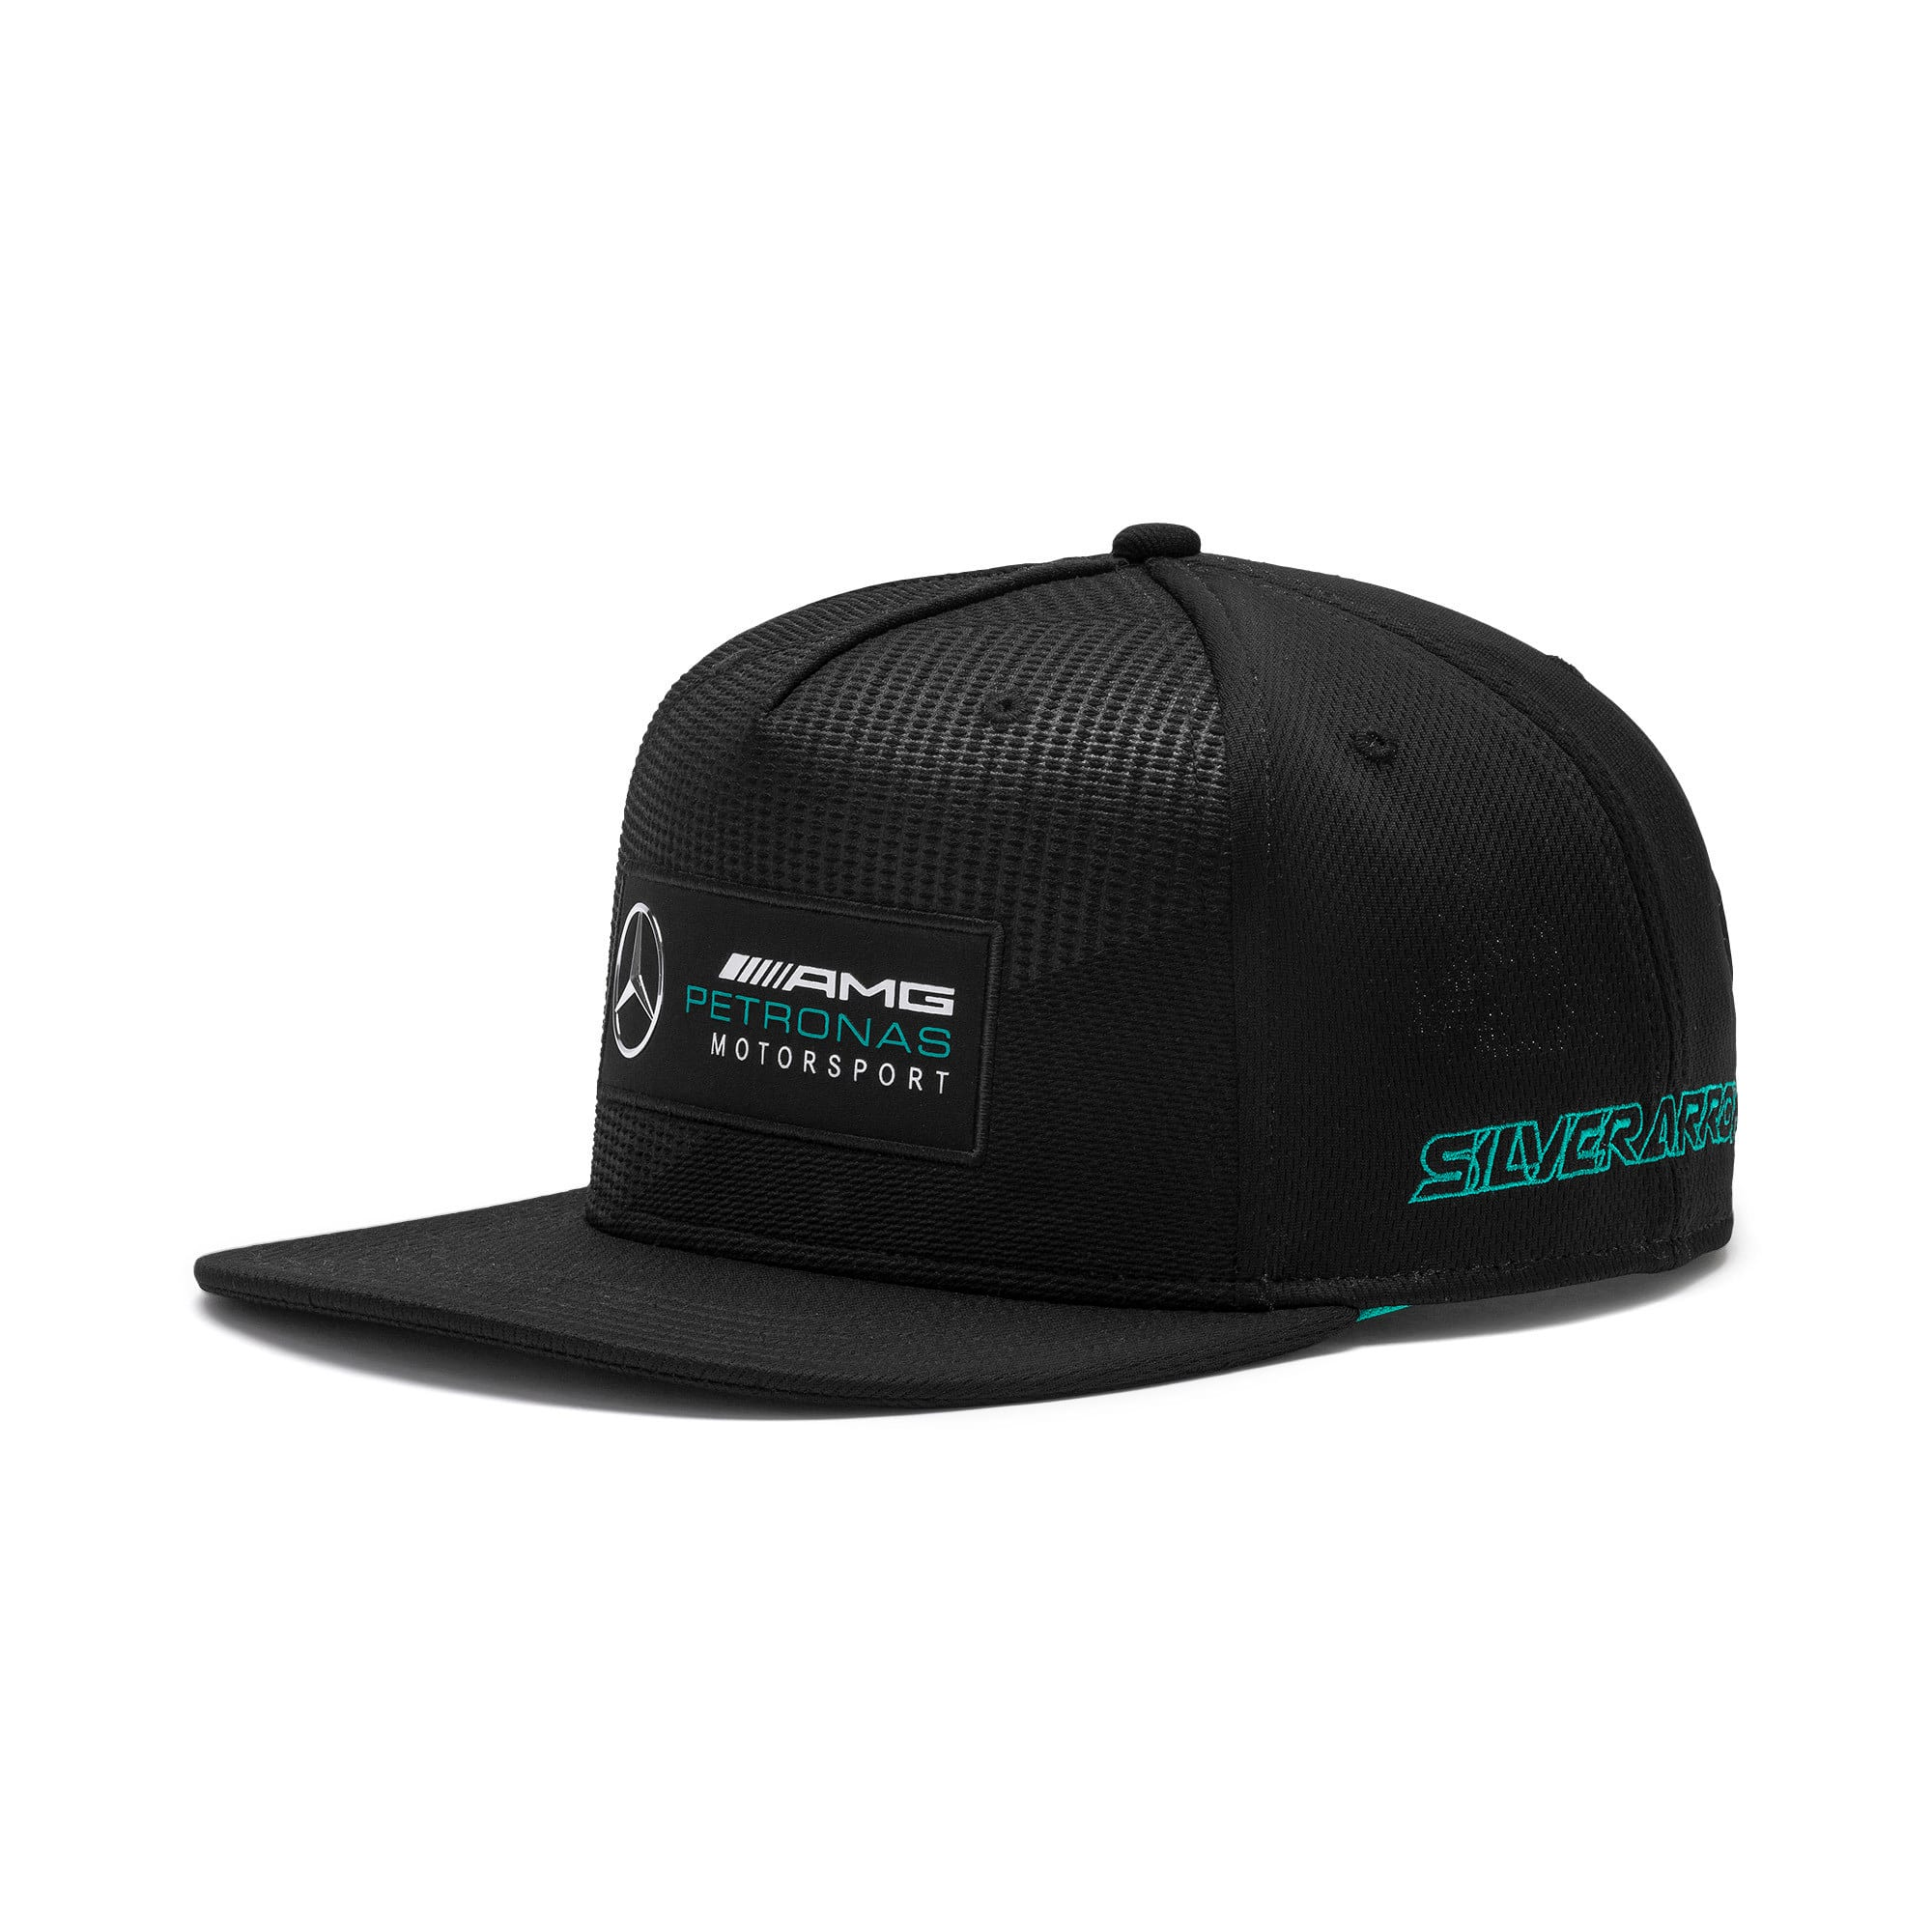 Thumbnail 1 of Mercedes AMG Petronas Motorsport Street Cap, Puma Black, medium